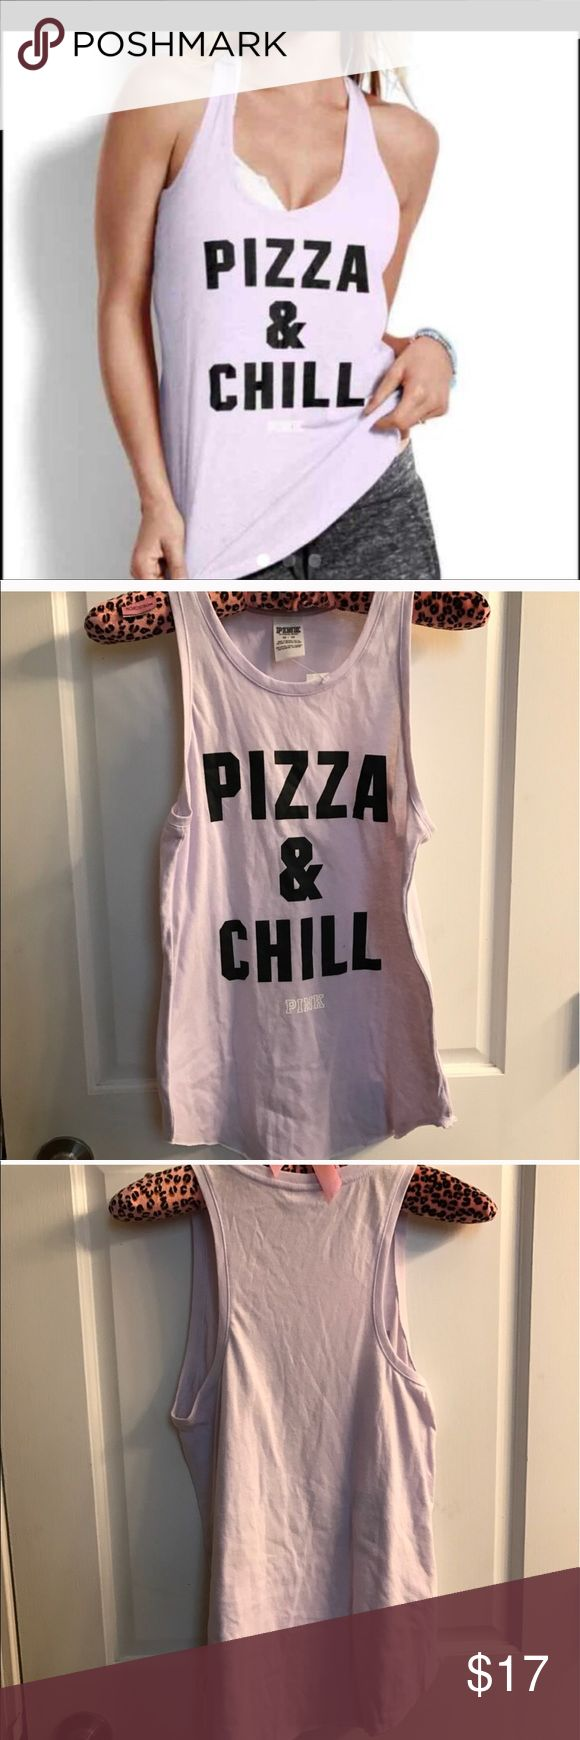 VICTORIA SECRET PINK TANK PIZZA AND CHILL Nwt a little oversized PRICE IS FIRM PINK Victoria's Secret Tops Tank Tops